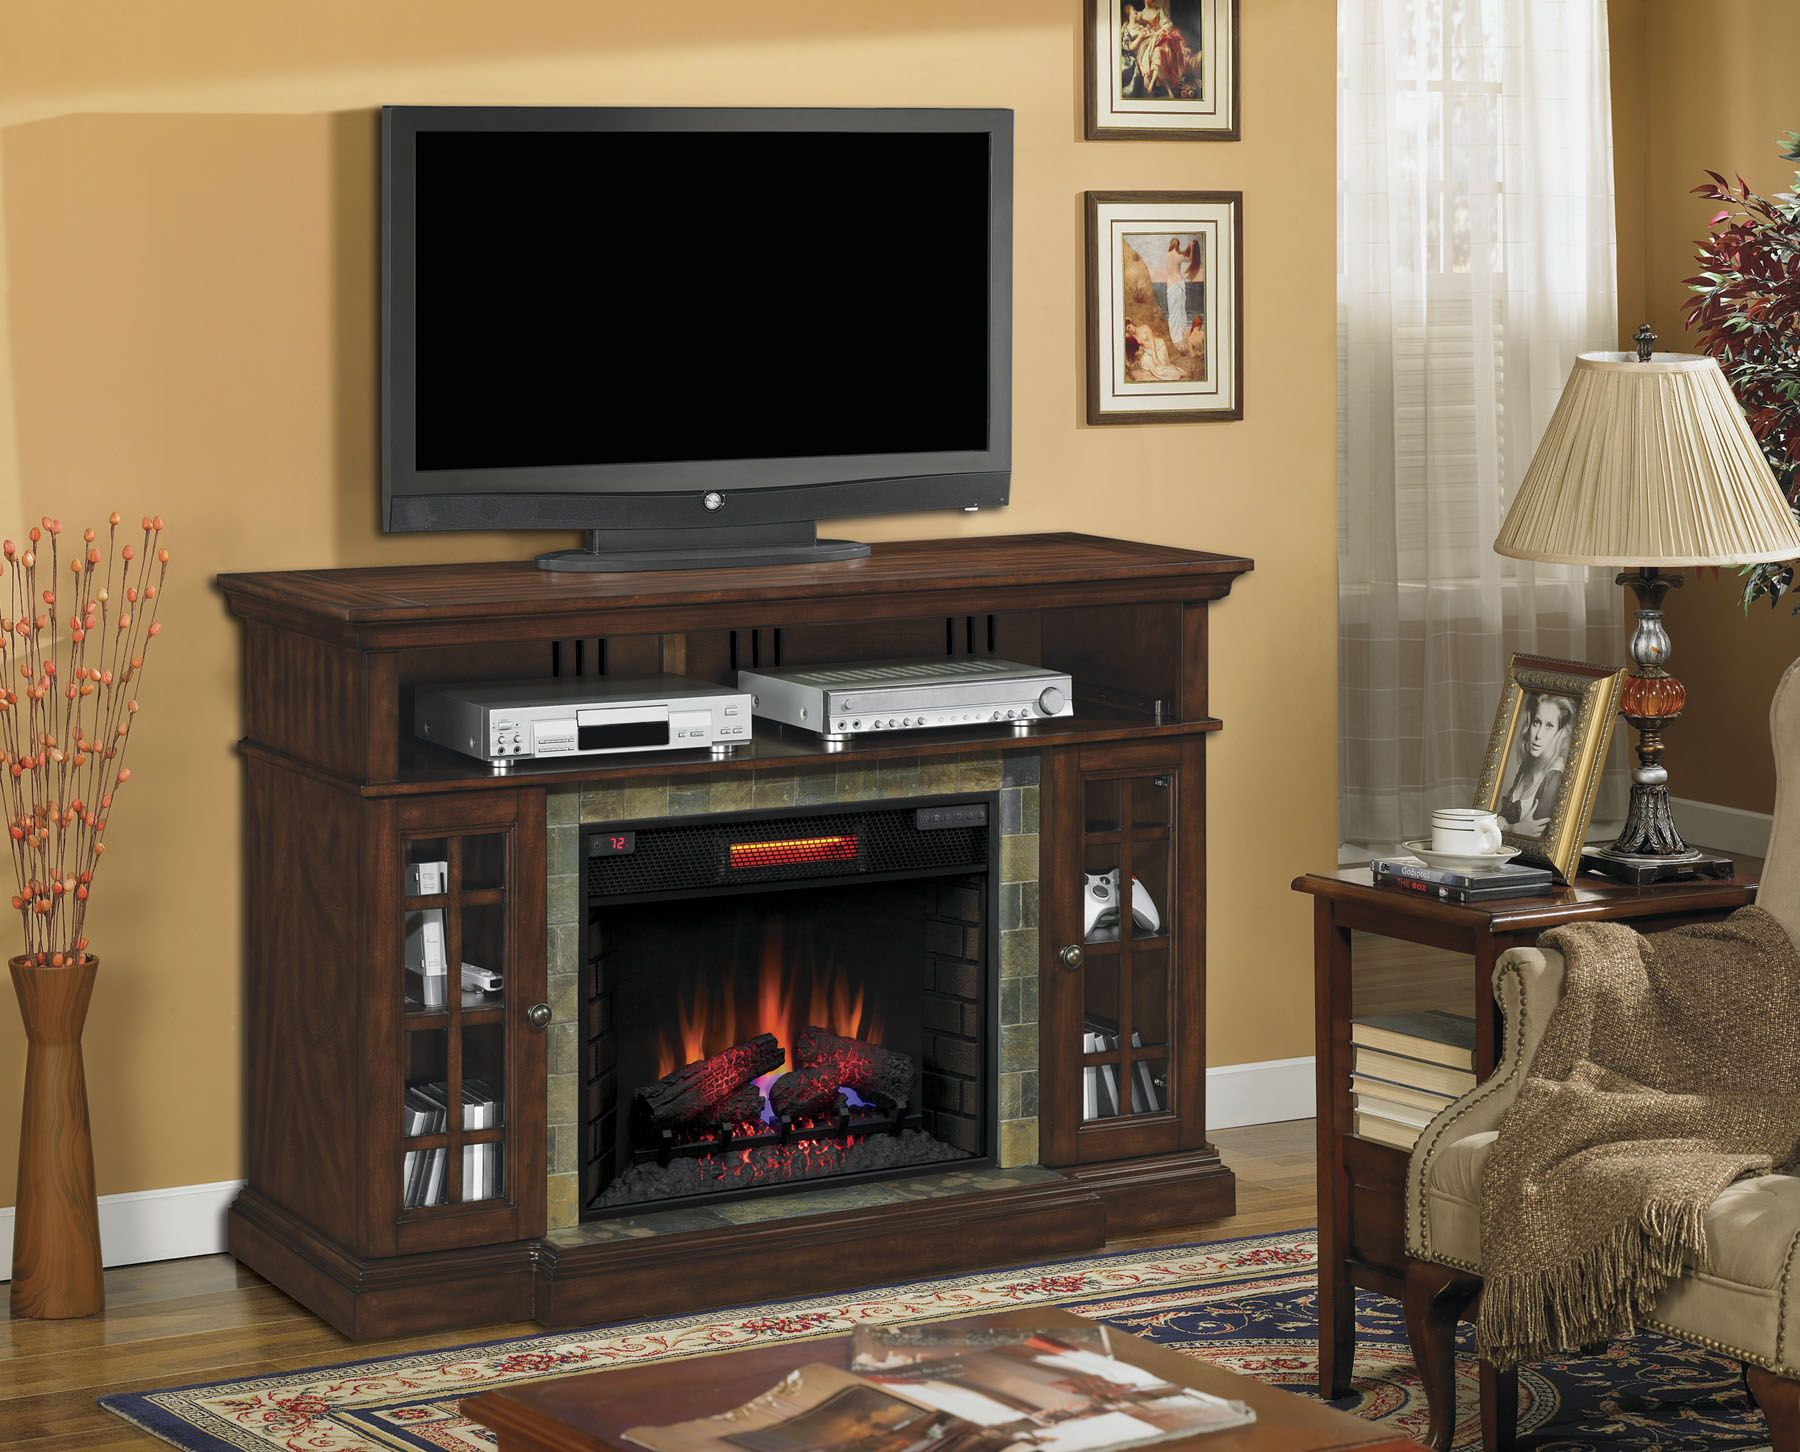 Classic flame belmont 60 quot tv stand with electric fireplace - The Lakeland S Roasted Cherry Finish And Real Slate Surround Combined With The Elegance Of A Classicflame Electric Fireplace Insert